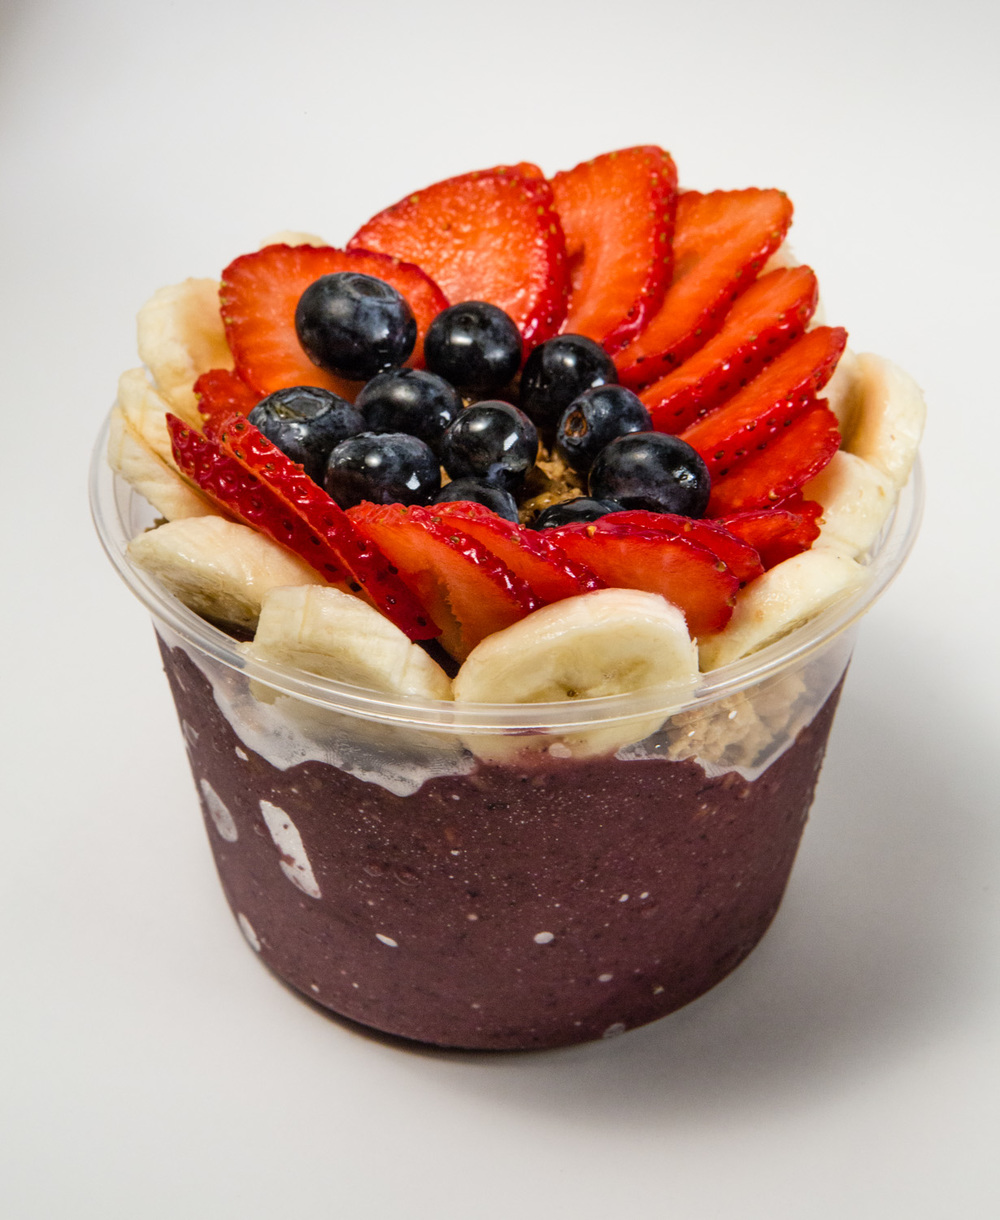 Power Bowl brings the concept of fresh foods back to life. With fresh taste of locally farmed fruits and variety of daily baked granola, Power Bowl proves to be one of the healthiest meals to date.